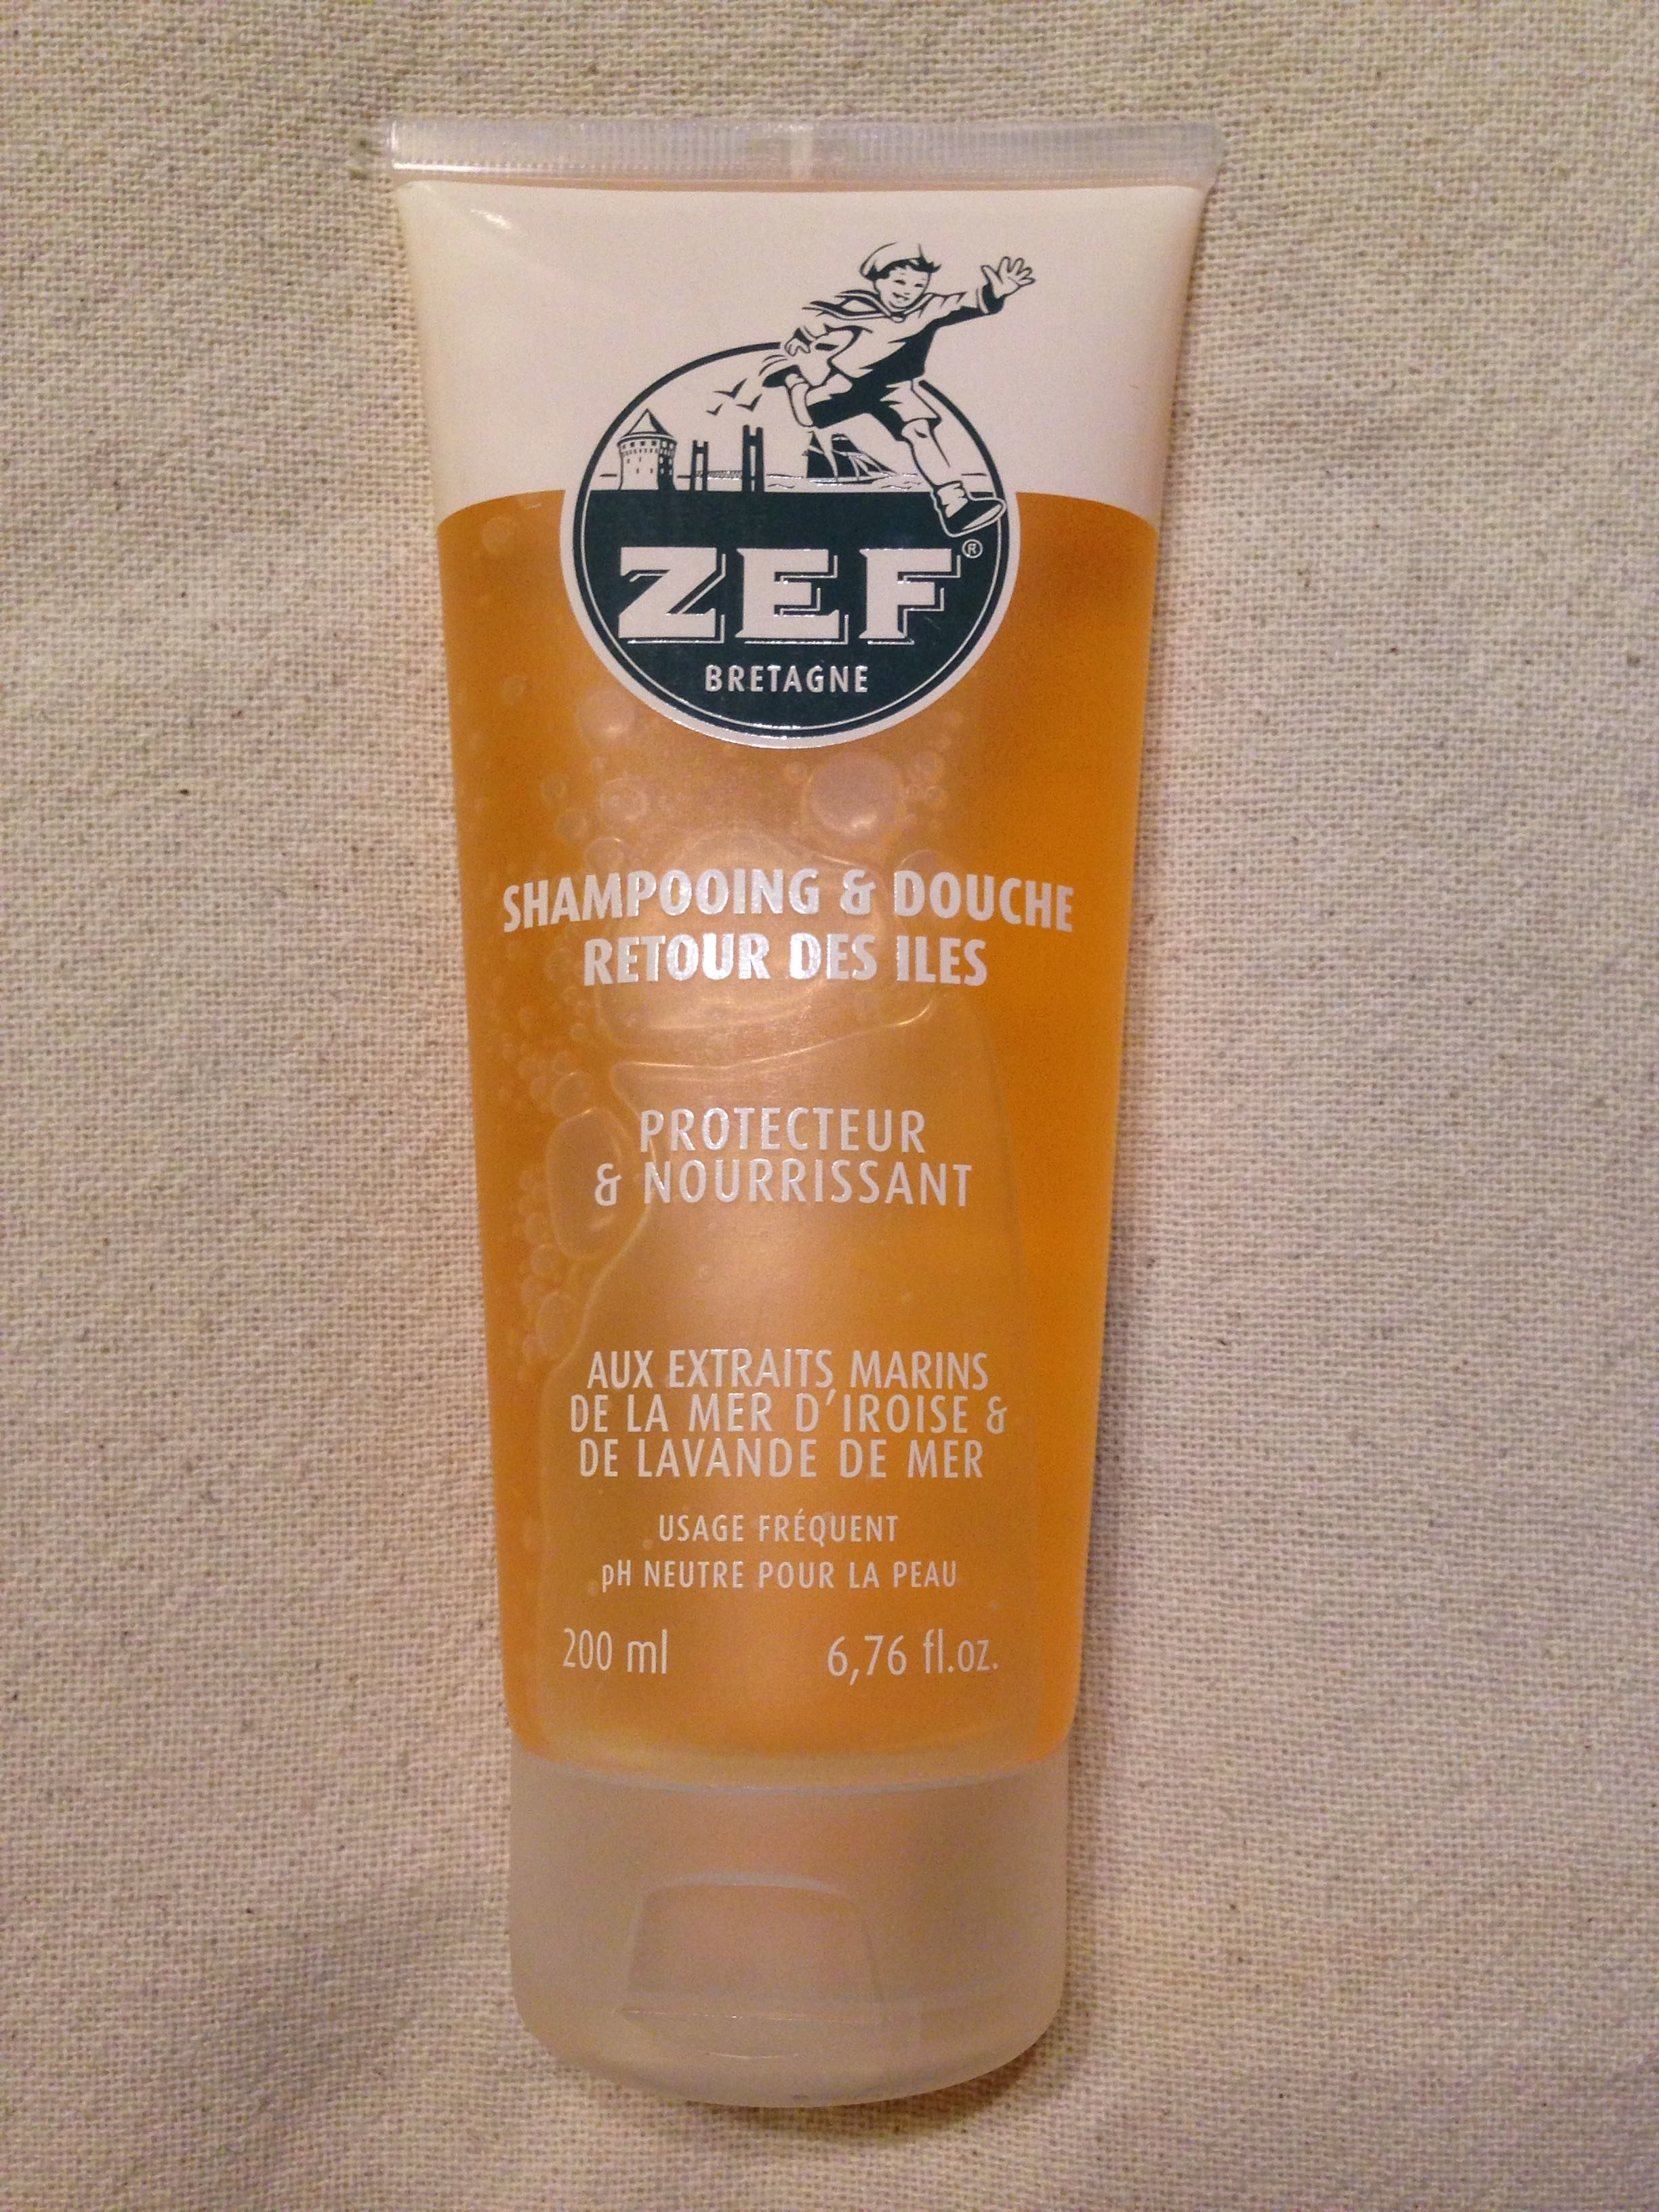 shampooing douche - Product